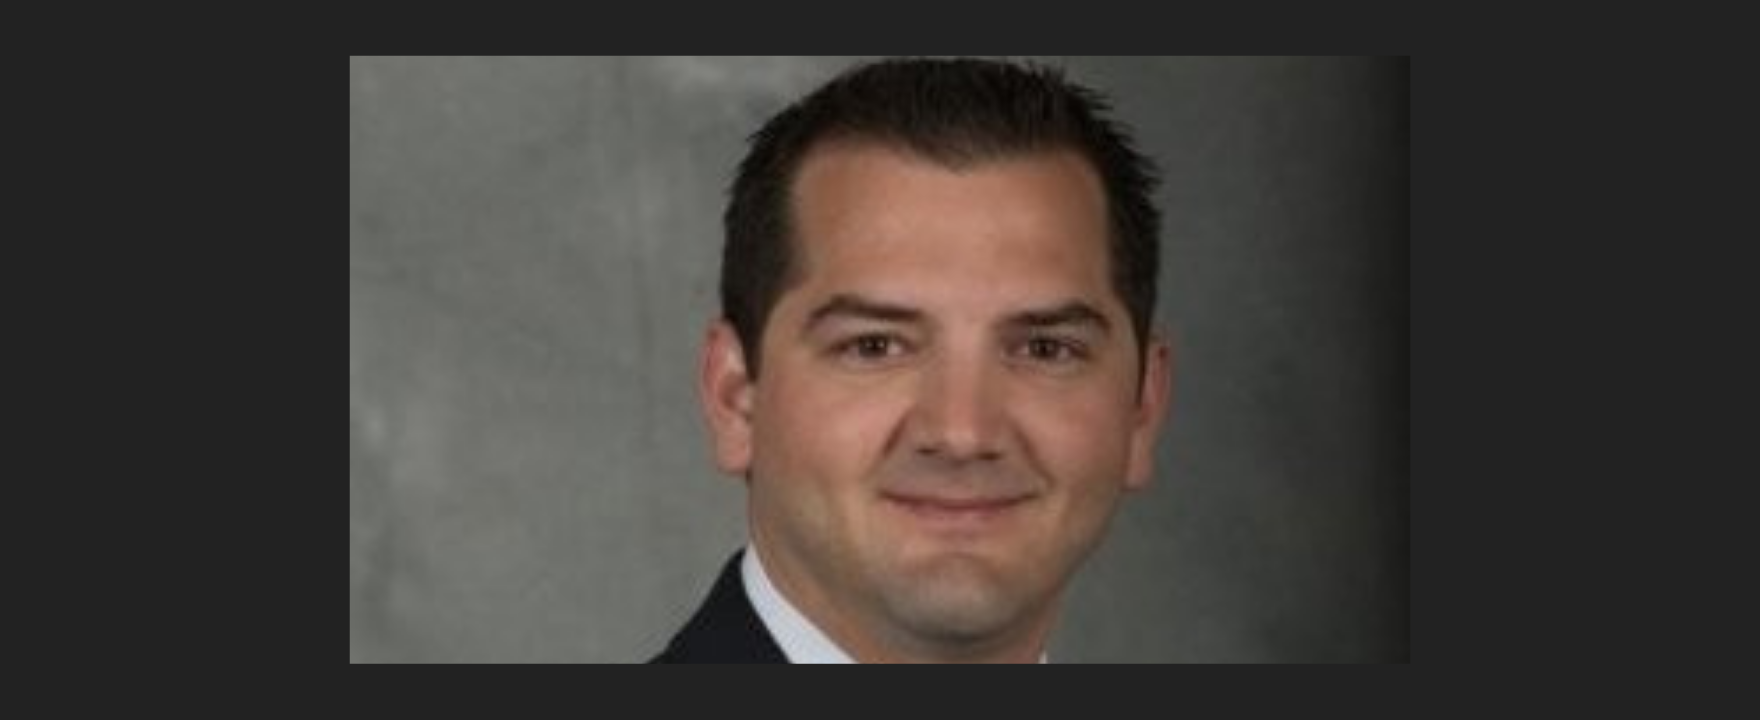 Russel Delapp, Executive Vice President of Services and Support at Navigator Business Solutions